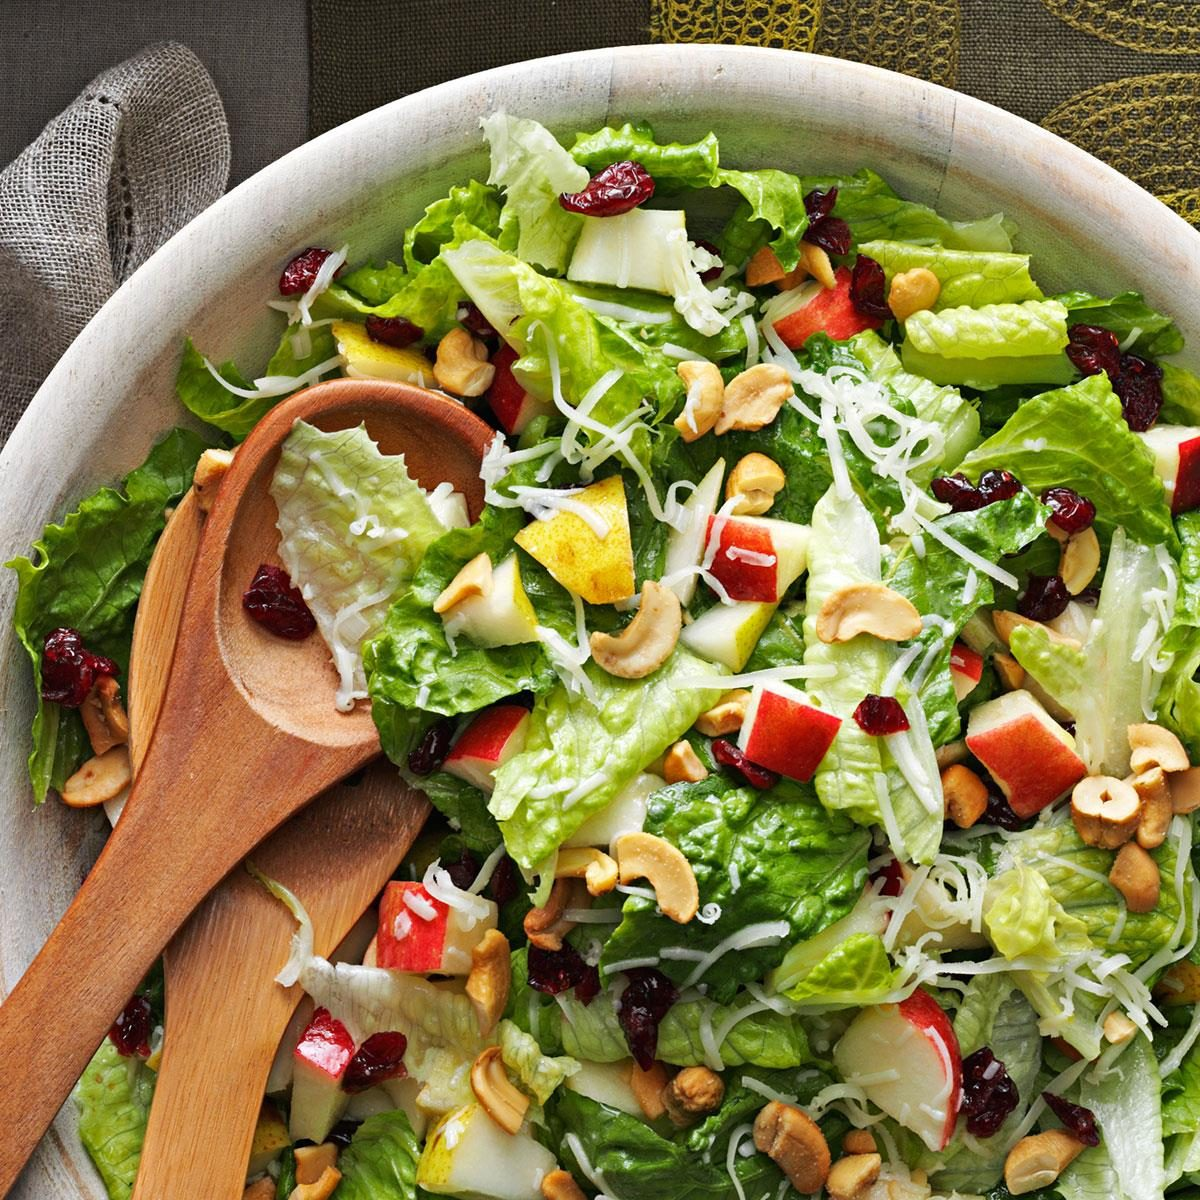 Holiday lettuce salad recipe taste of home for Salad for thanksgiving best recipes